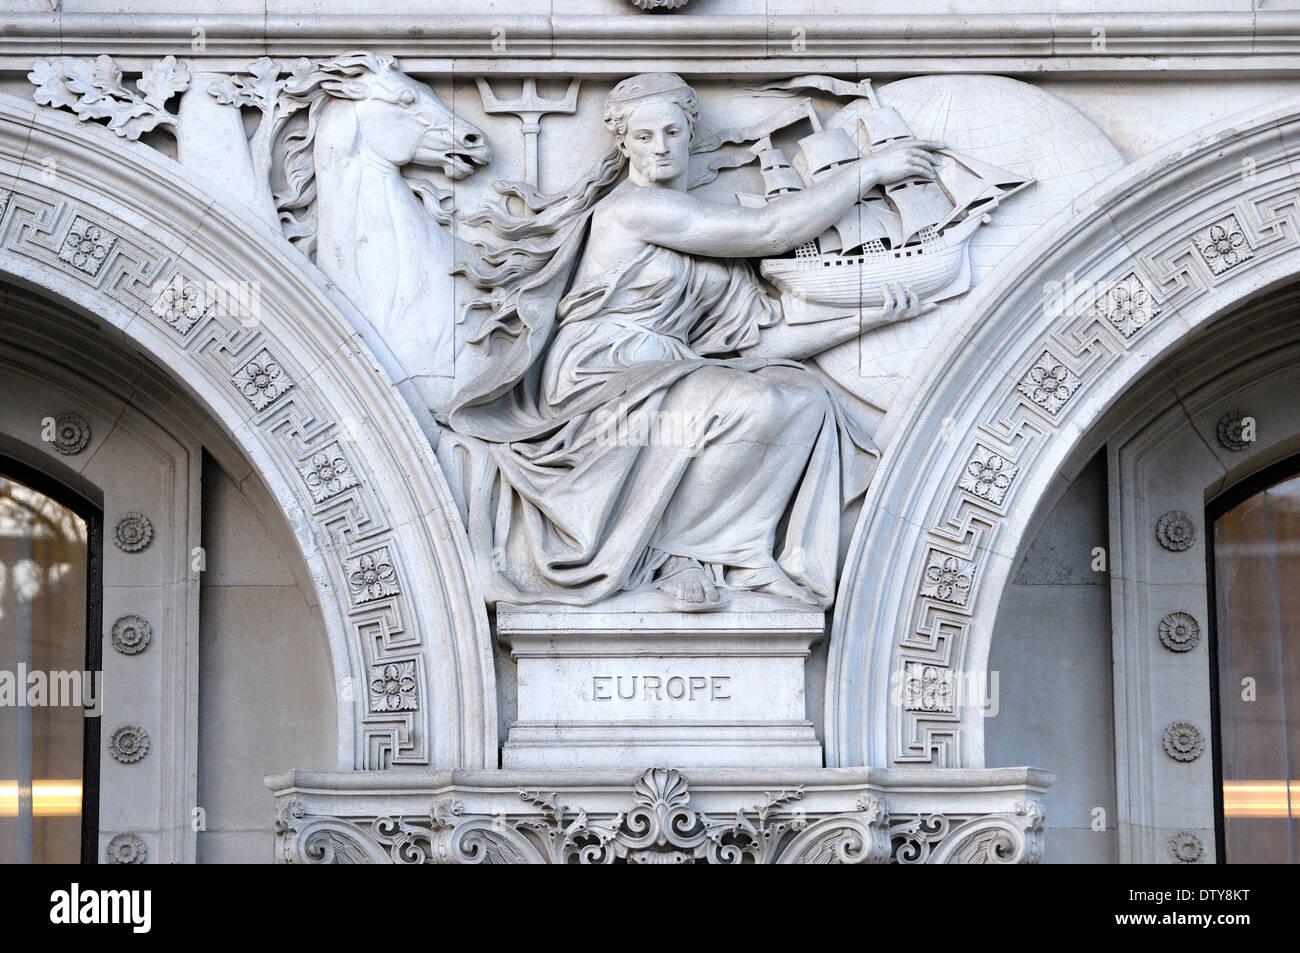 London, England, UK. Foreign and Commonwealth Office in Whitehall. Facade detail: allegorical figures representing Europe - Stock Image